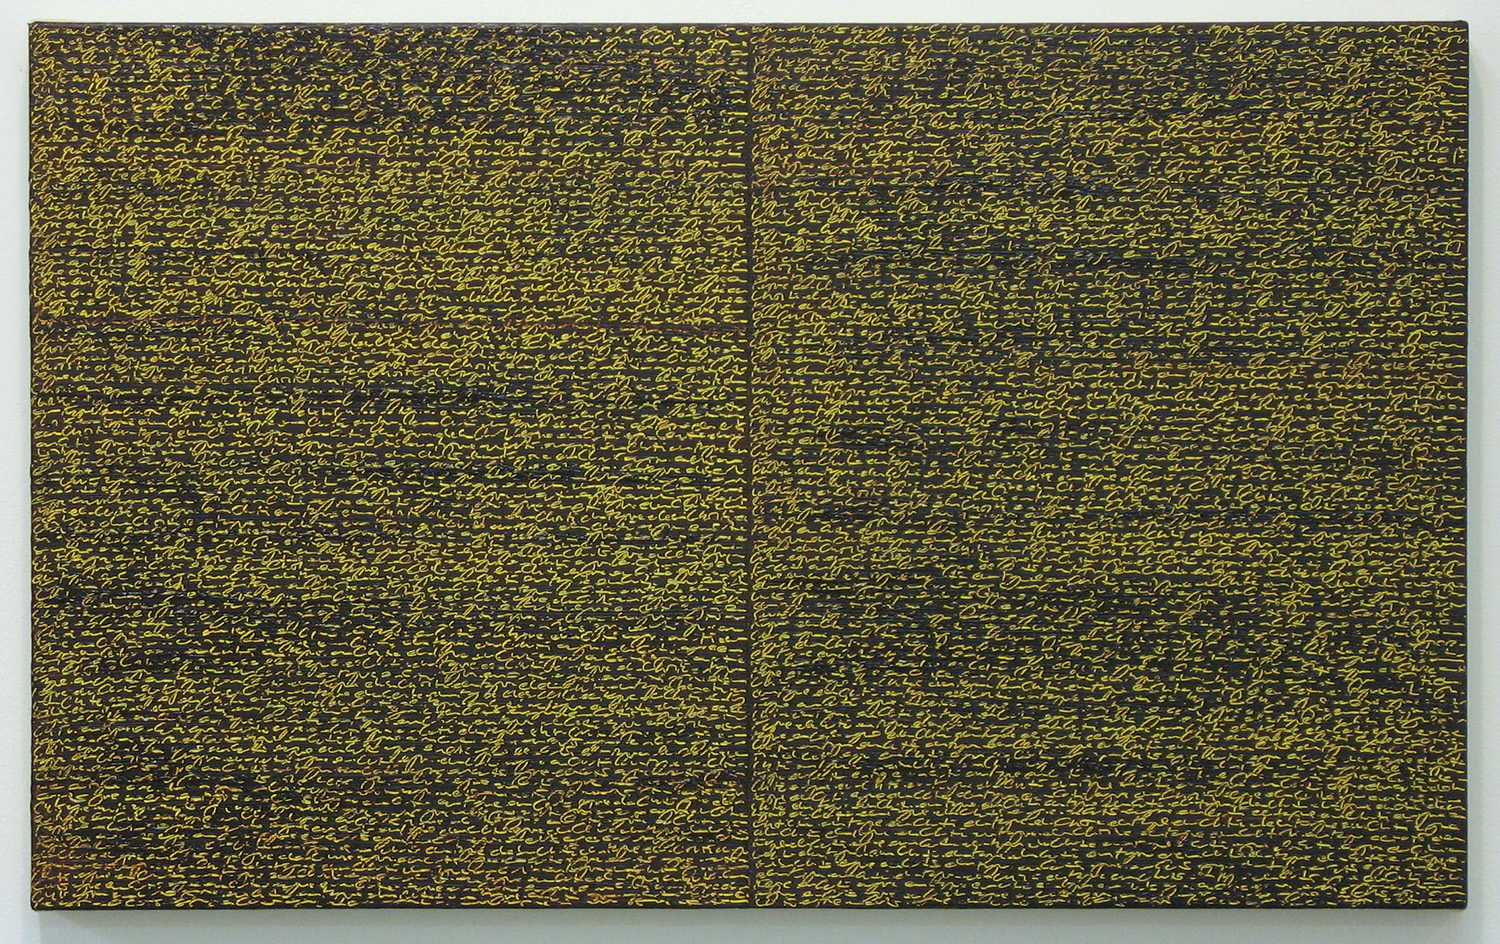 Open Book -yellow-brown-<br>oil and amber on canvas over panel, 37 x 60 cm, 2008